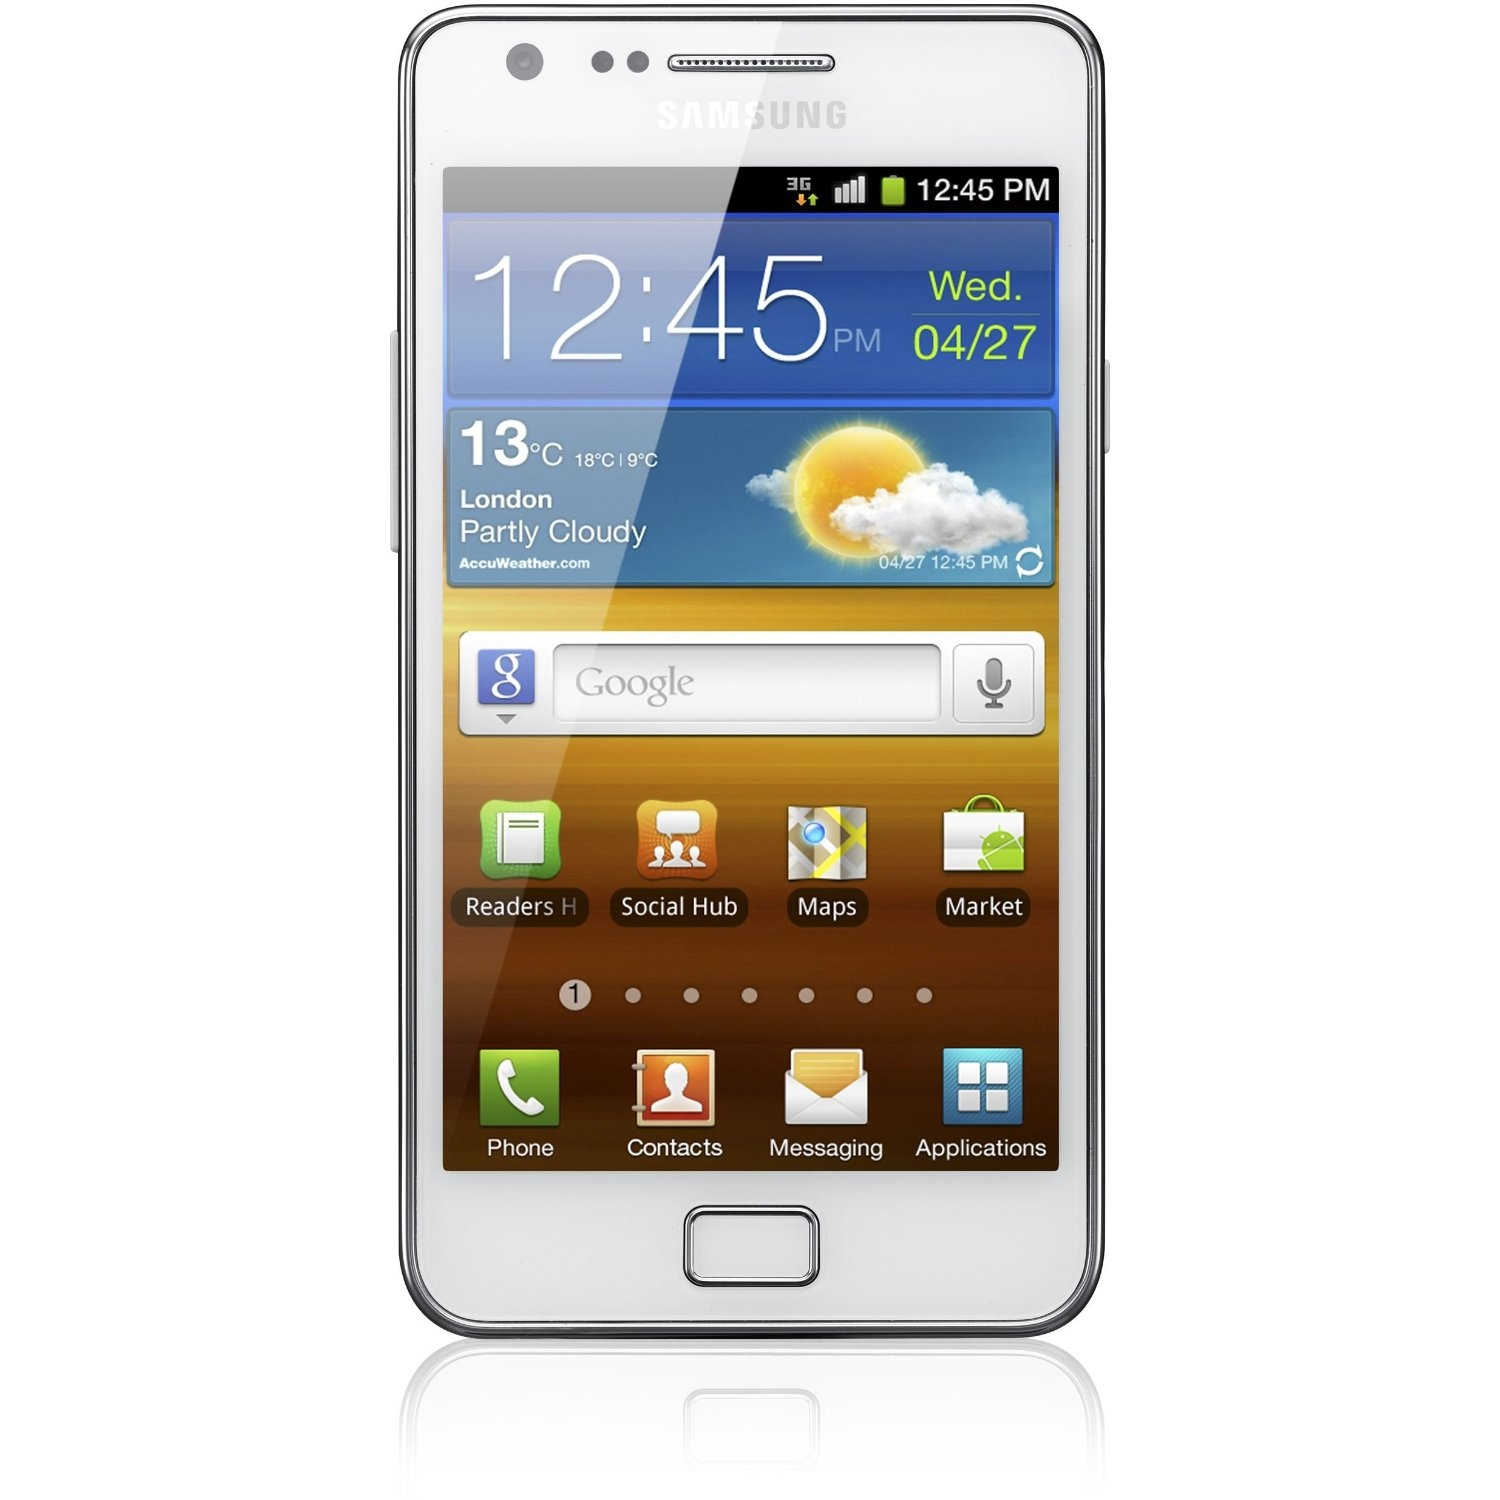 Samsung s2 i9100 cwm recovery